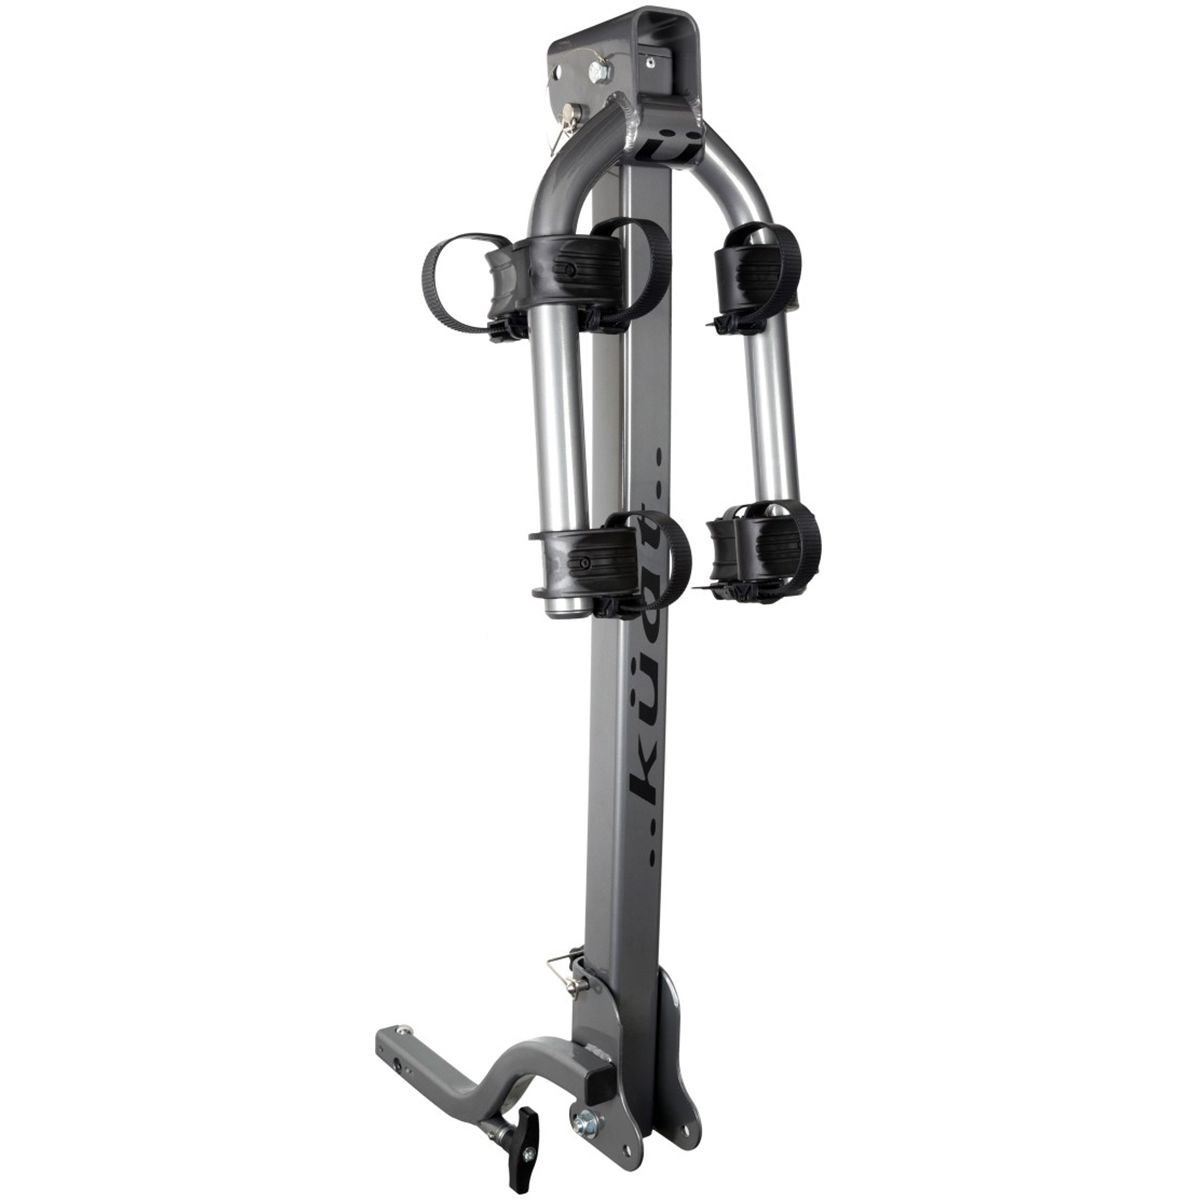 reviews mybikestand rack hitch kuat review and com ready sherpa bike beta nv roll to